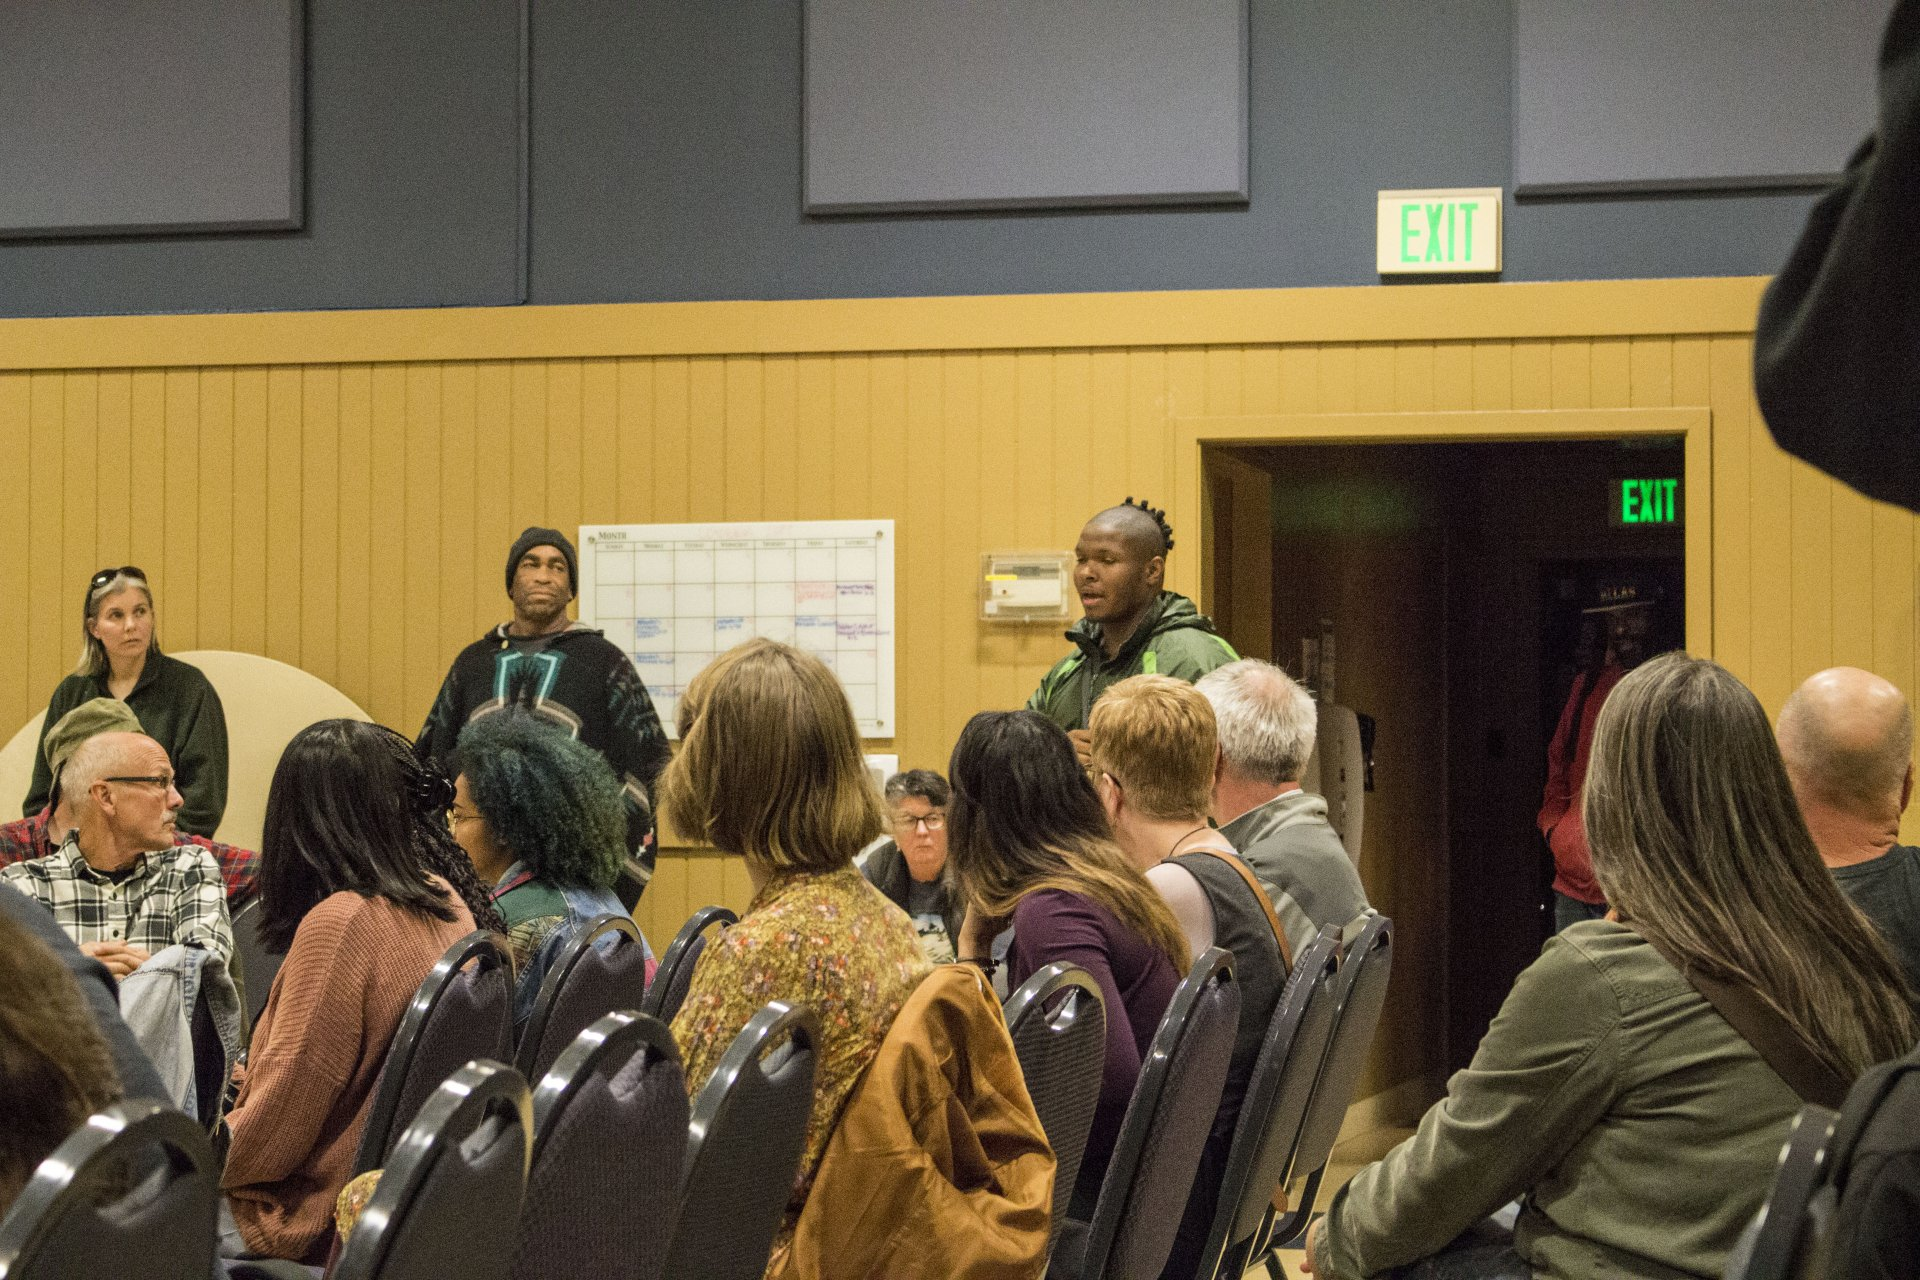 Students stood up to speak during open discussions at the Arcata City Council Meeting on Oct 26. Photo | Sarahi Apaez